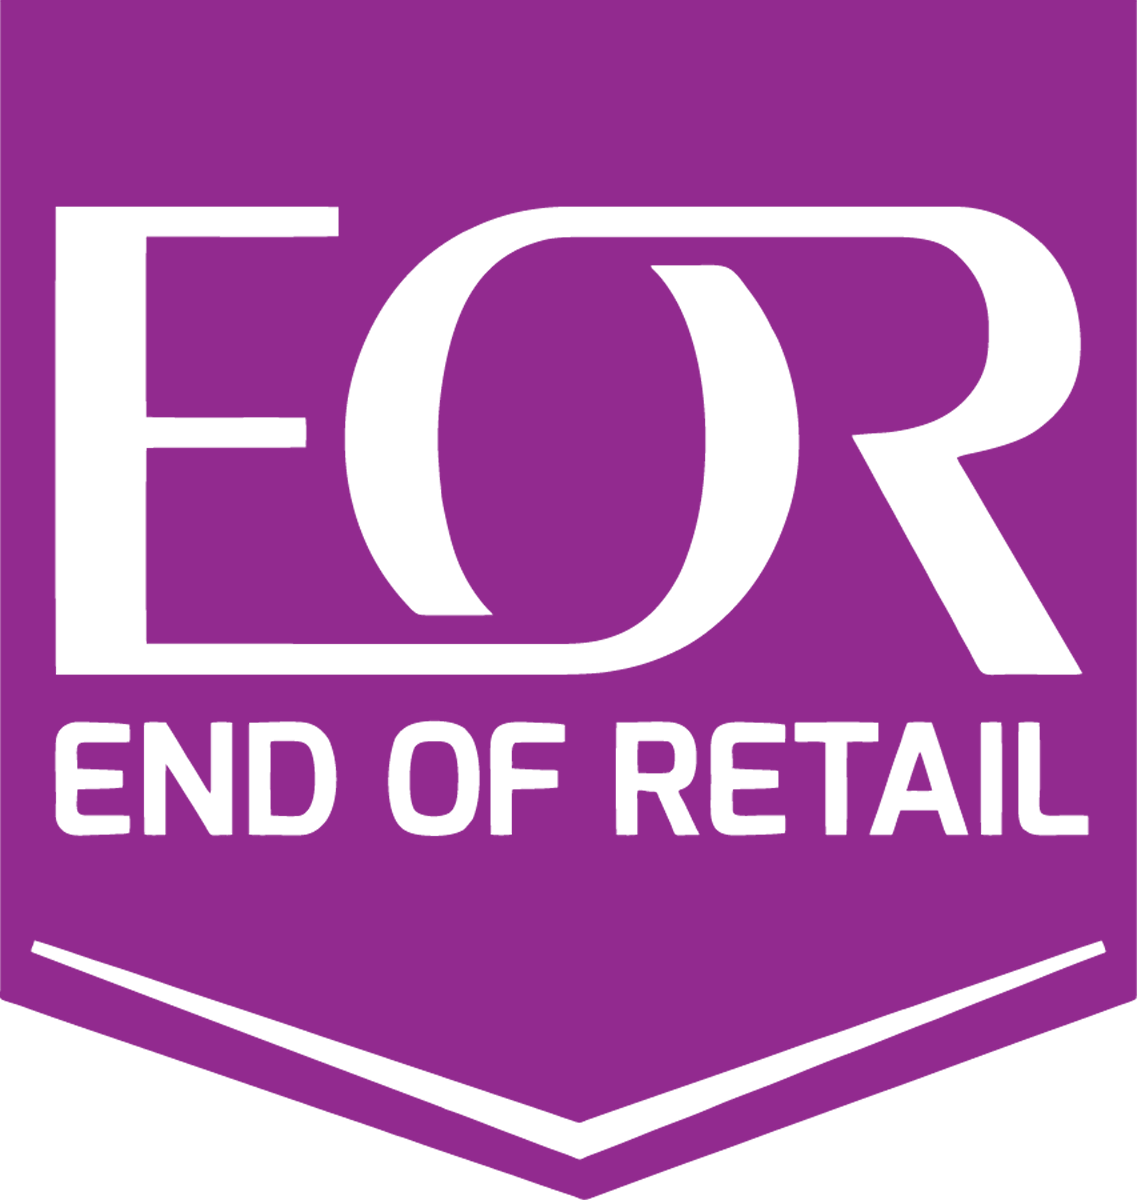 End Of Retail coupon codes